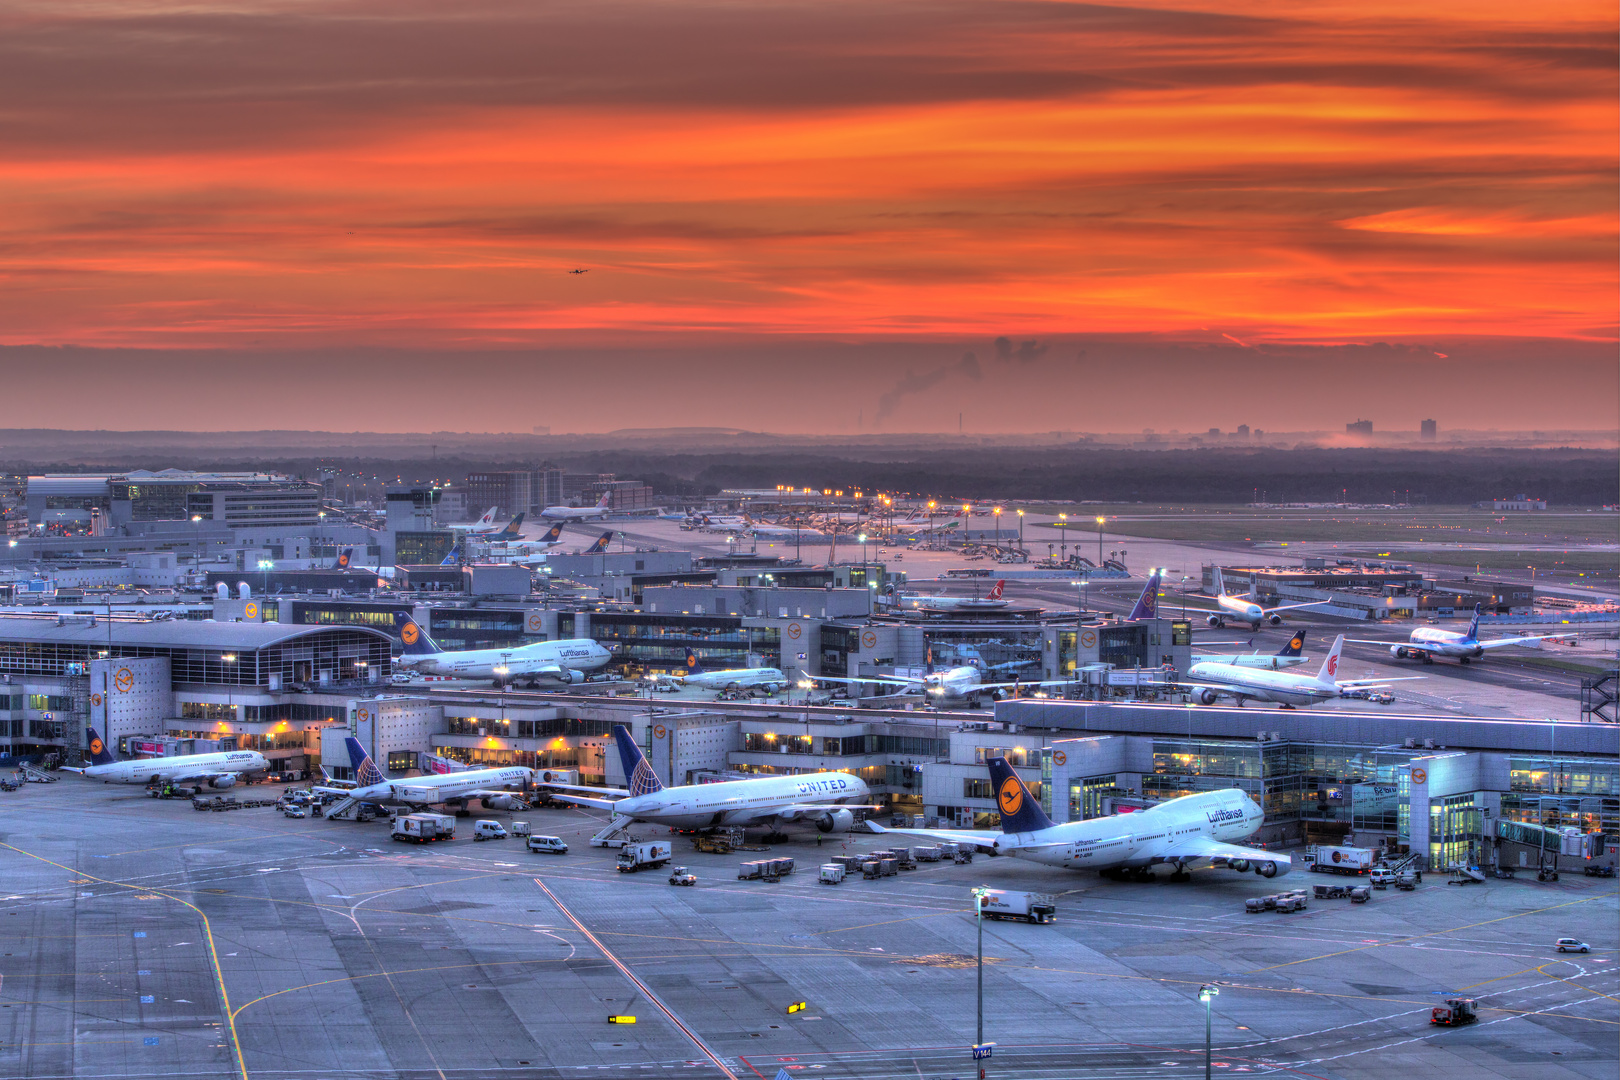 Sunrise @ Frankfurt Airport